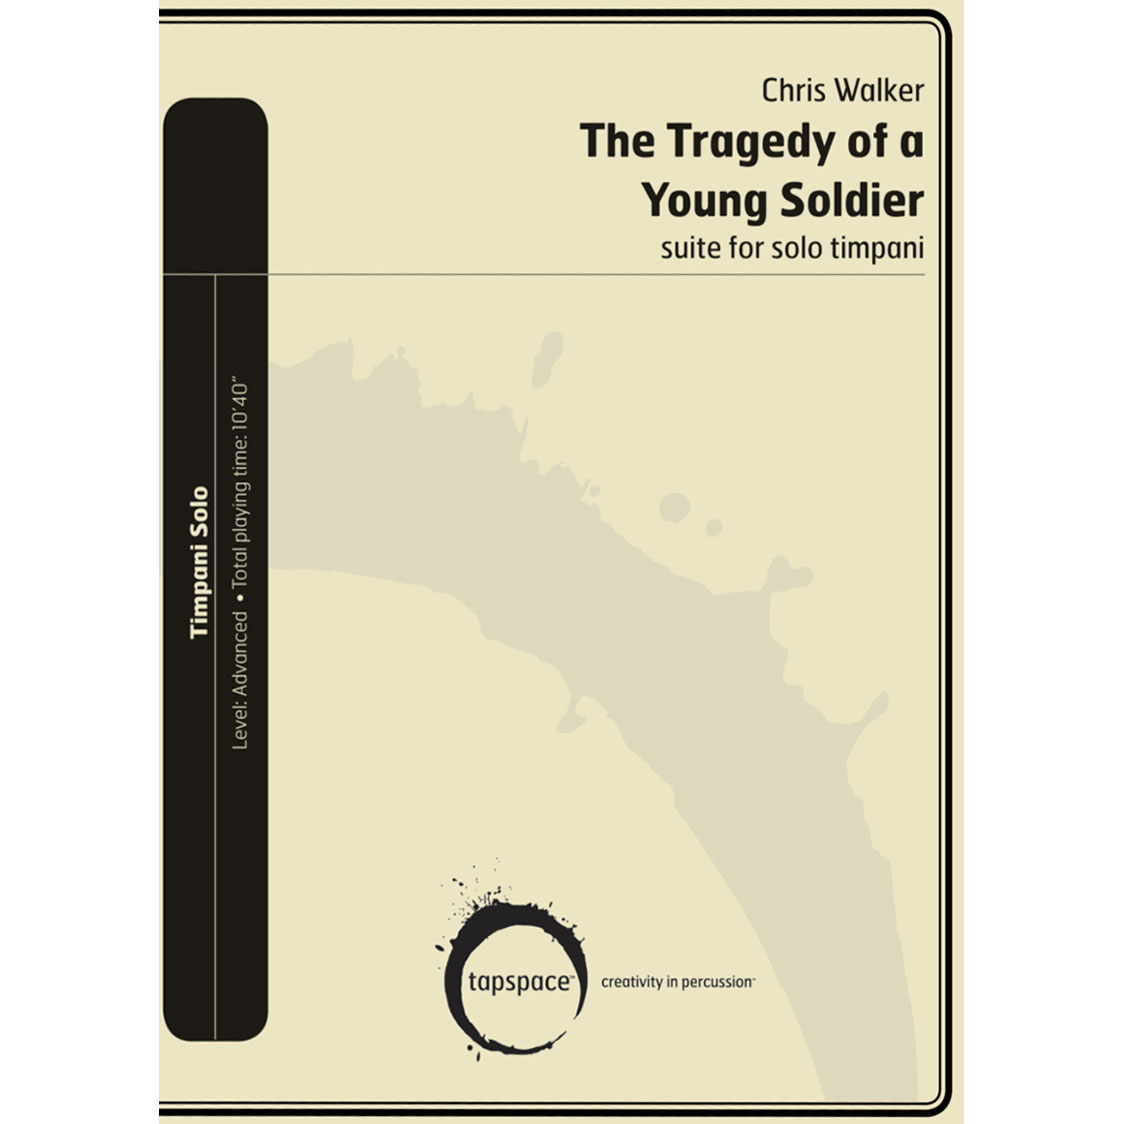 The Tragedy of a Young Soldier by Christopher D. Walker